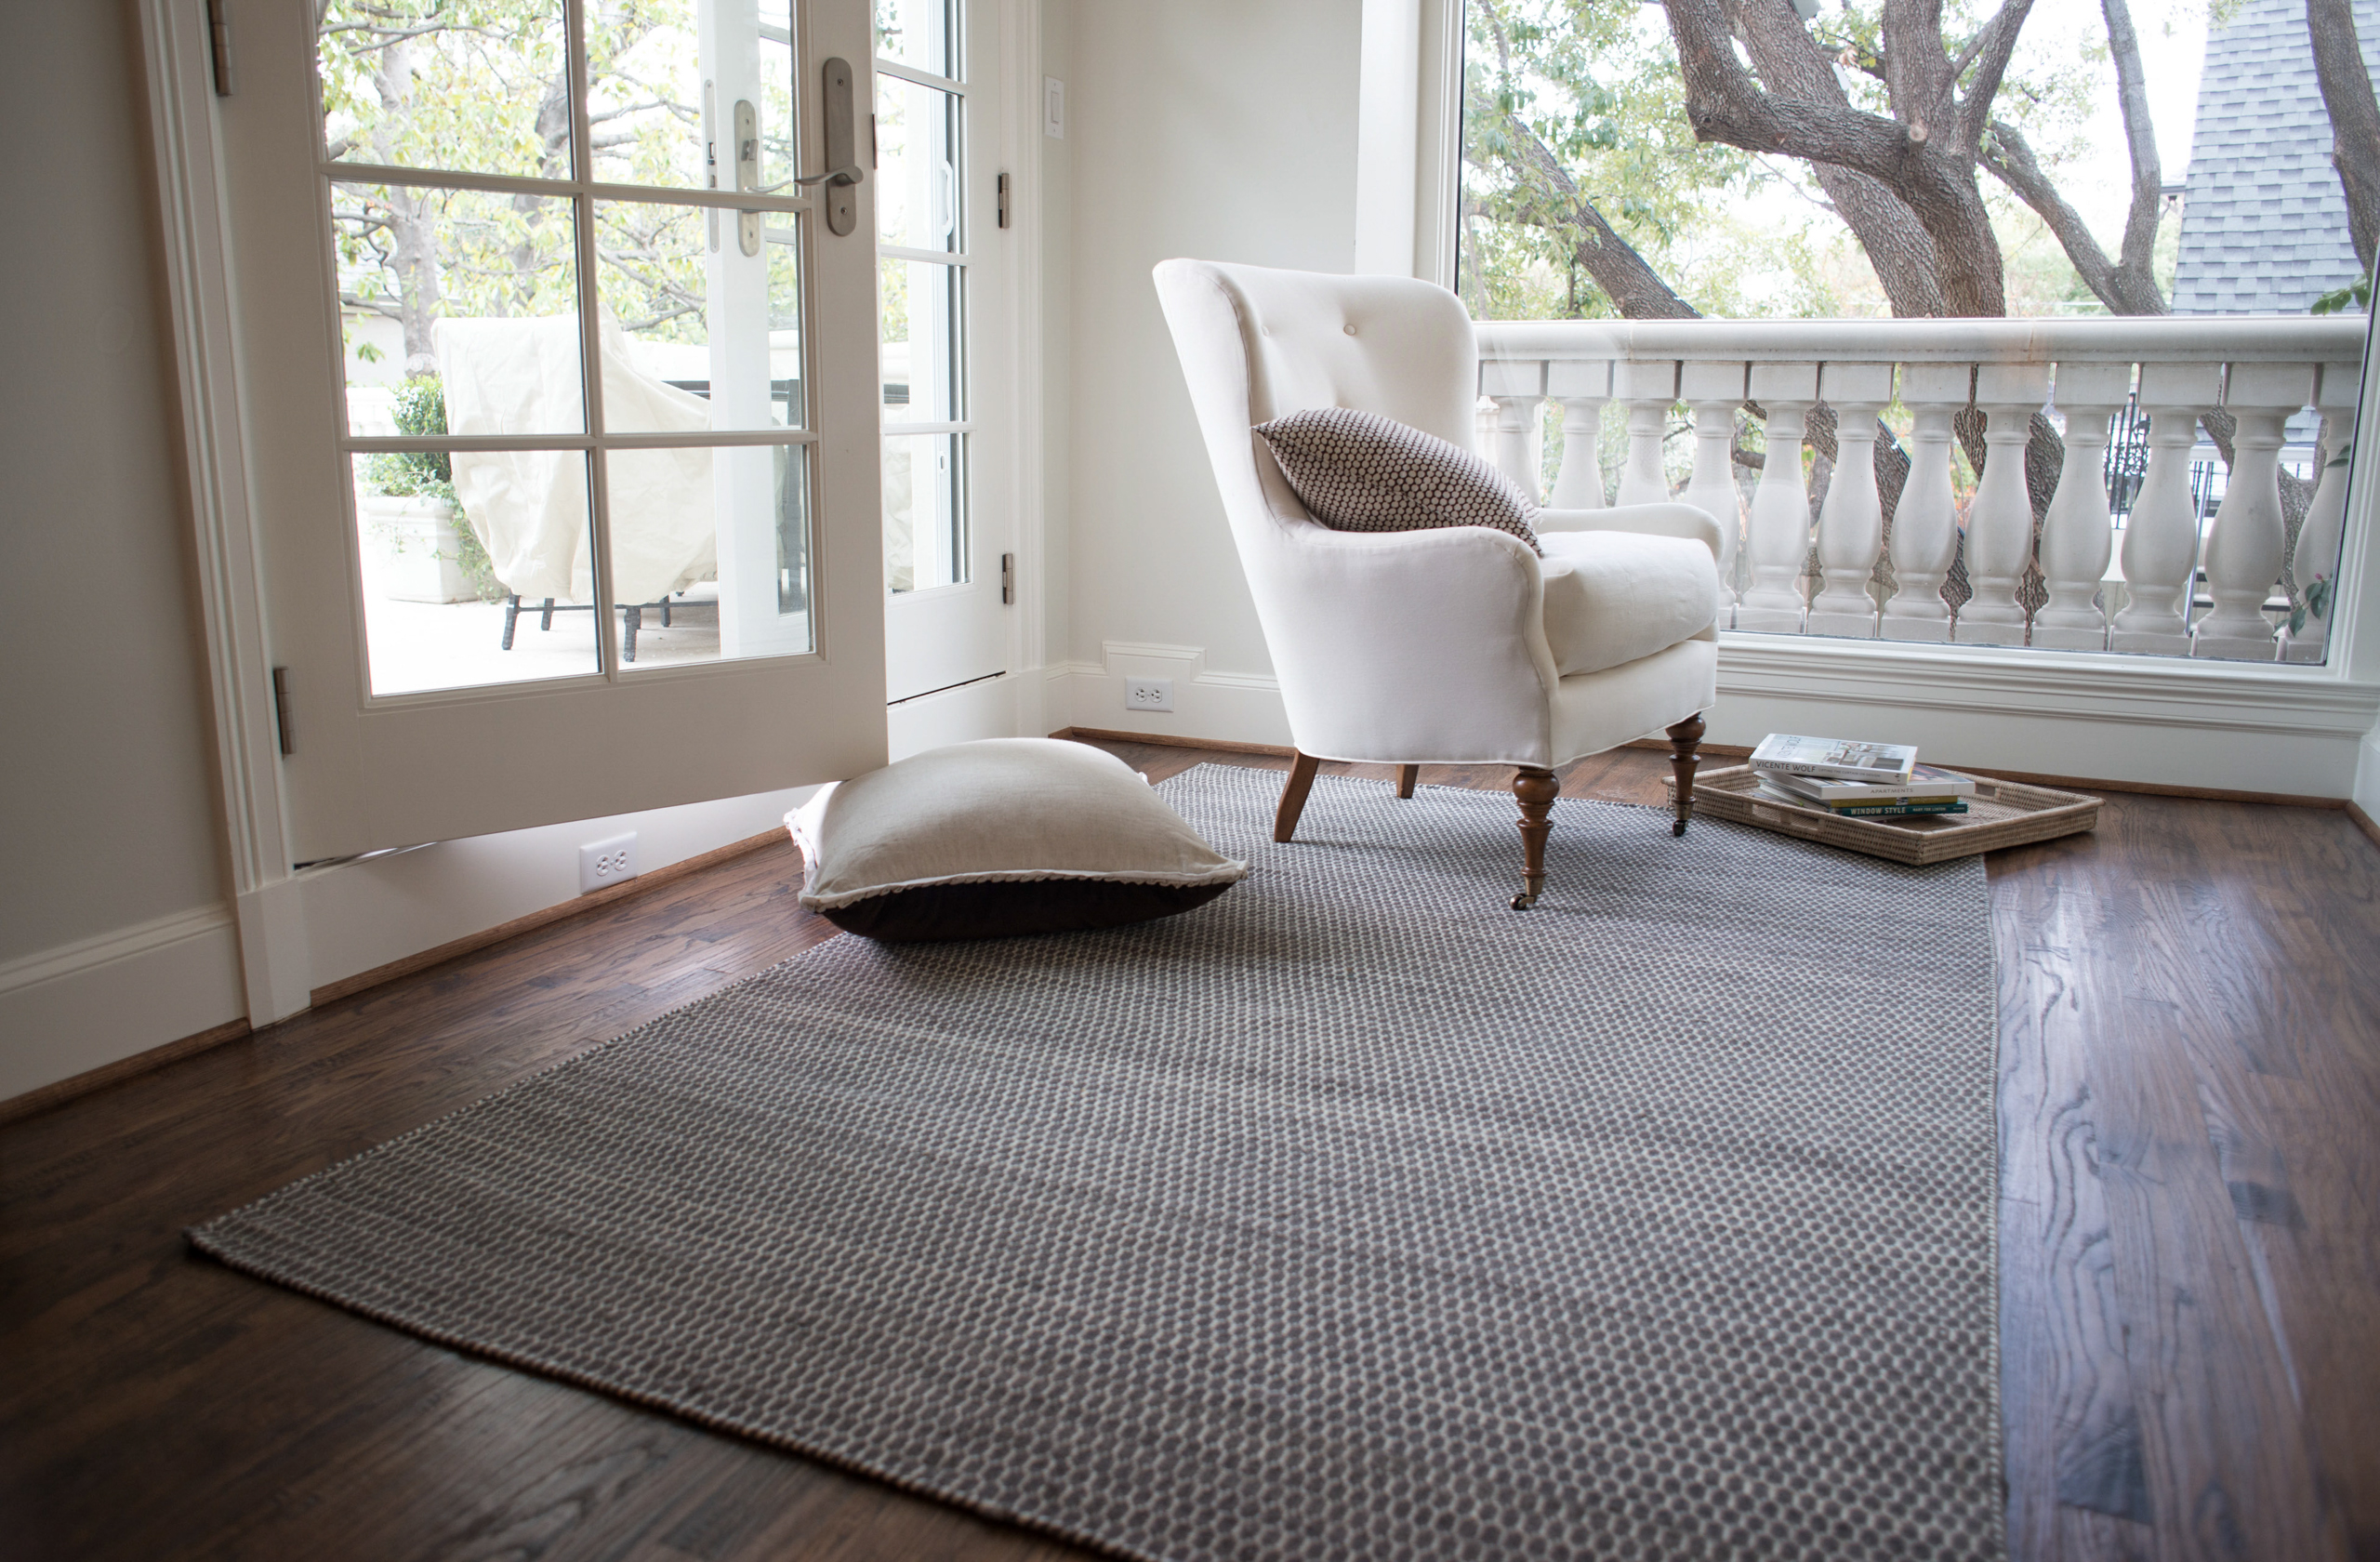 wonderful gray loloi rugs on wooden floor plus single white sofa for living room decor ideas